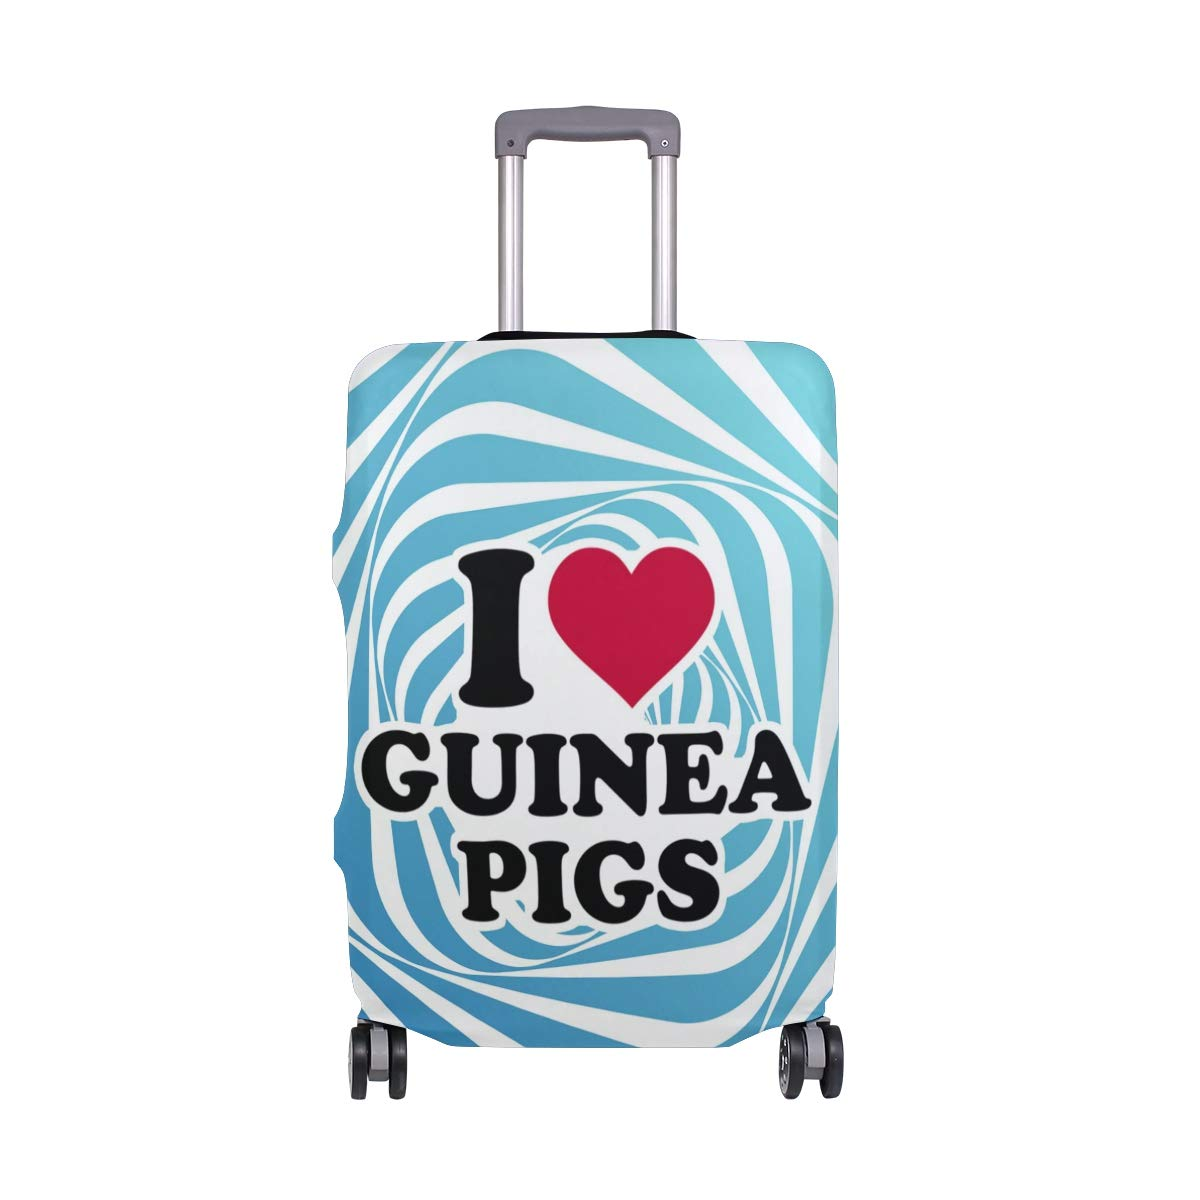 I Love Guinea Pigs Travel Luggage Cover - Suitcase Protector HLive Spandex Dust Proof Covers with Zipper, Fits 18-32 inch